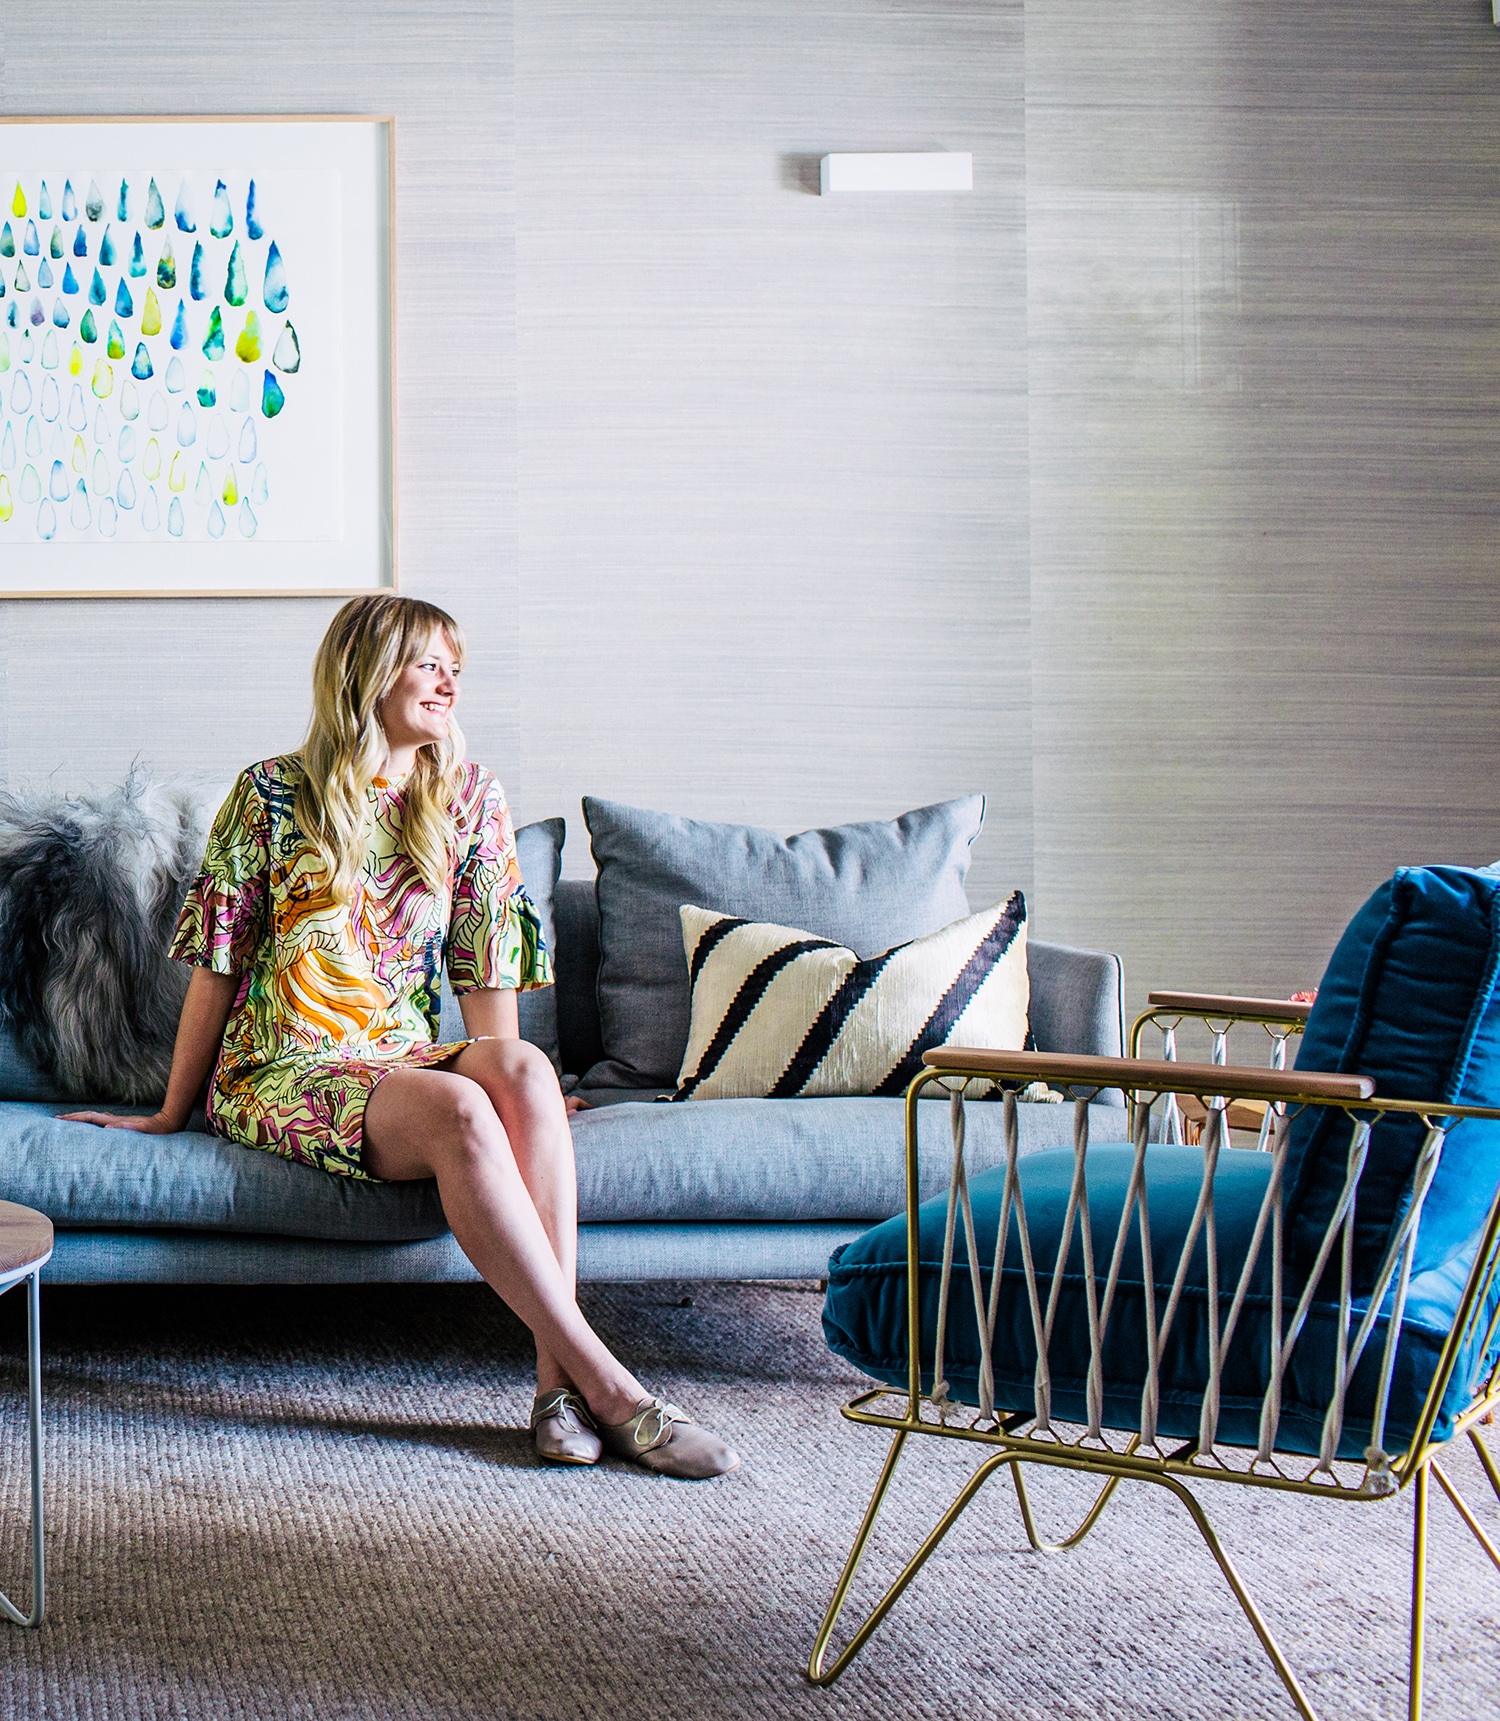 This image and image below: Photography:   Hannah Blackmore  /  Styling:   Claudia Stephenson  /  Interior:   The Designory